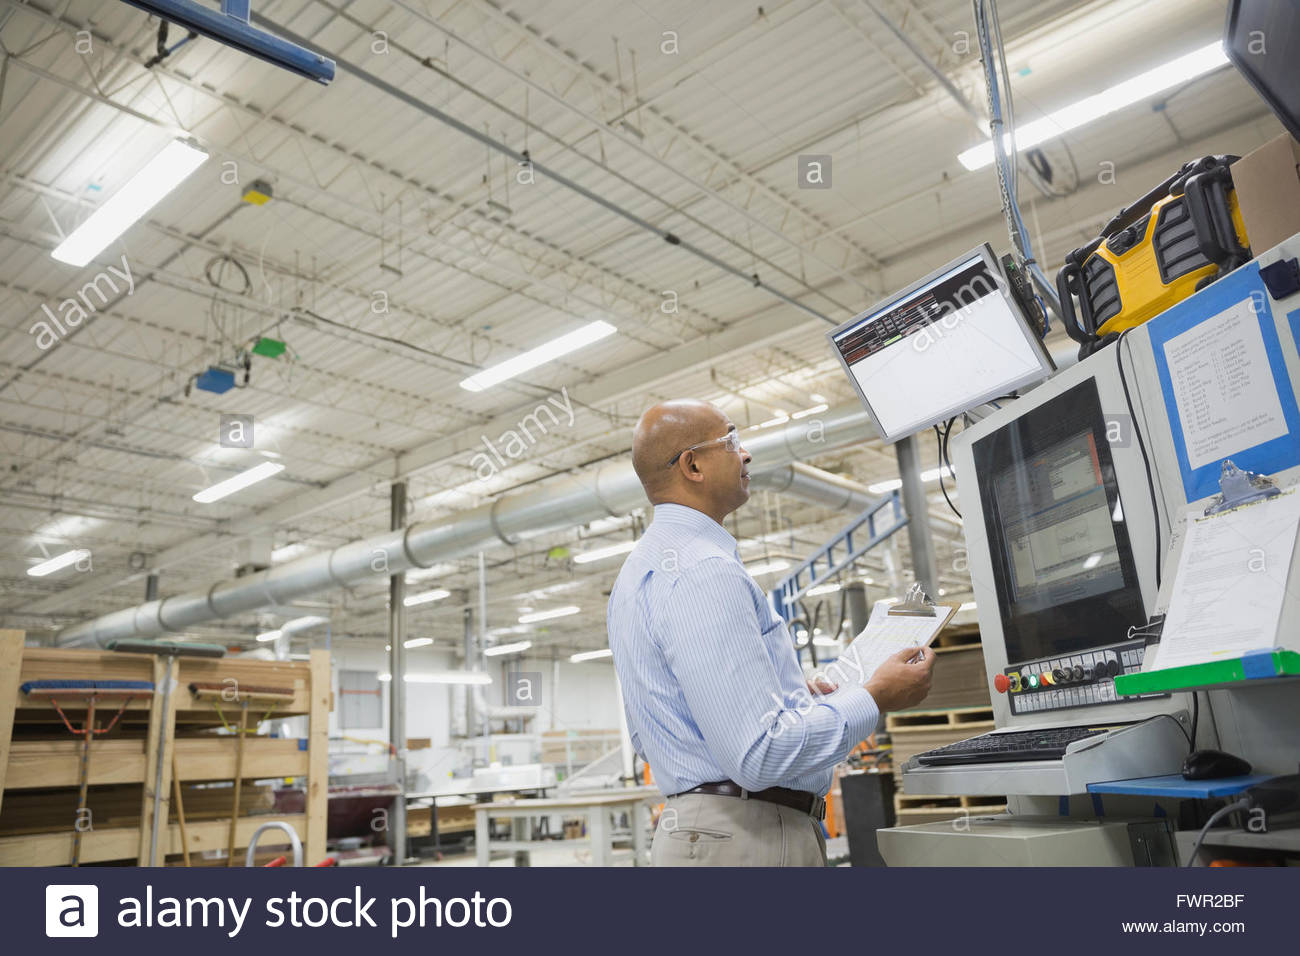 Manager looking at computer monitor in factory - Stock Image